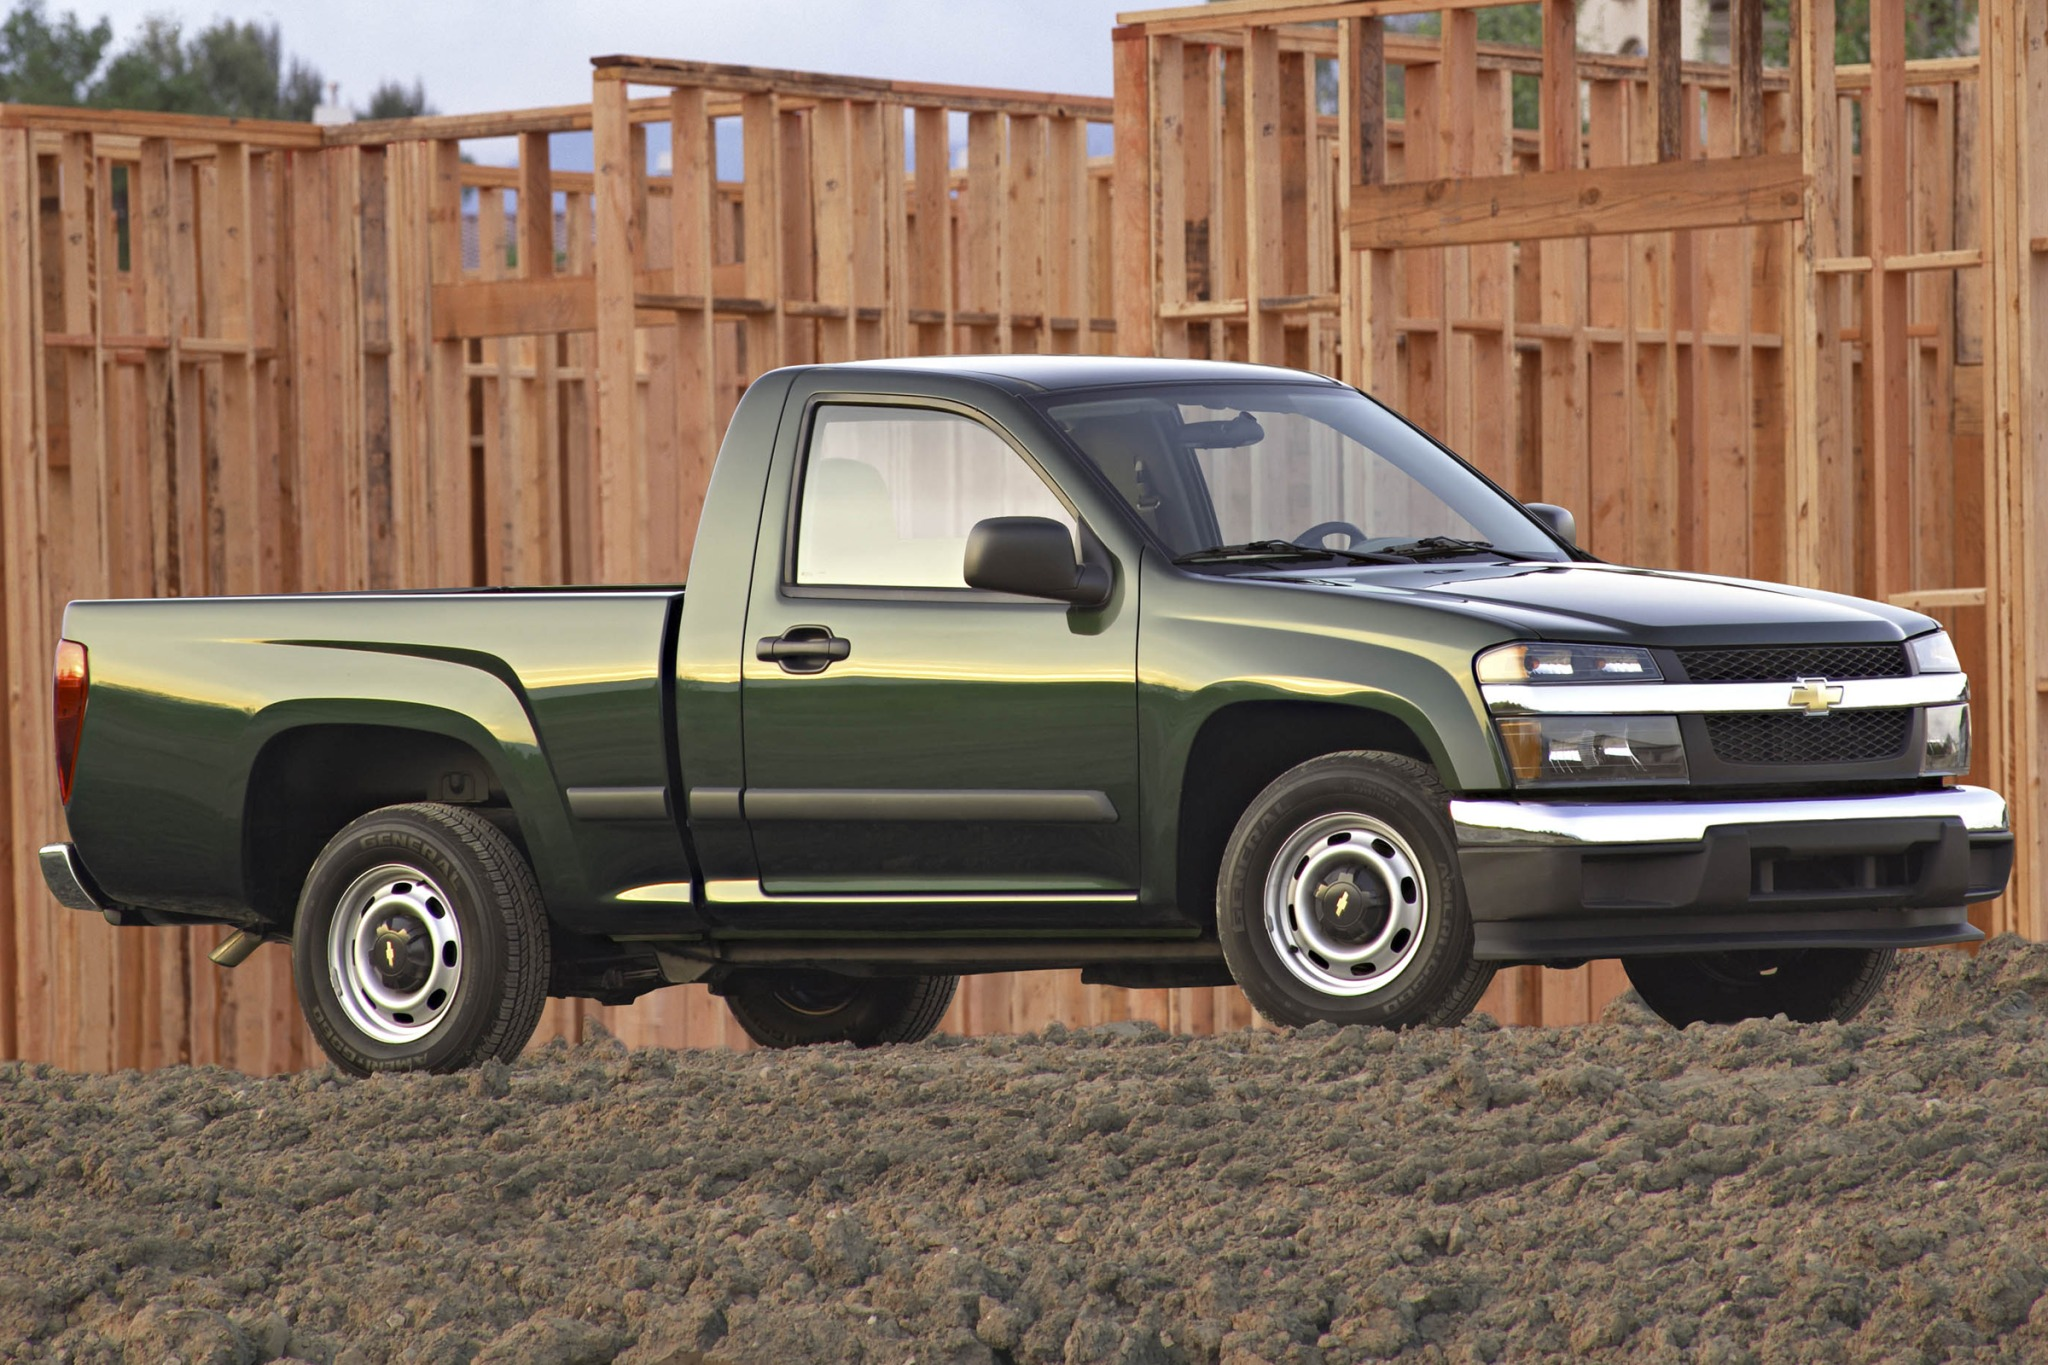 chevrolet colorado regular cab with 2456 2007 Chevrolet Colorado Regular Cab Pickup Work Truck Fq Oem 2 2048 on 1302 Chevrolet Colorado 4x4 silver 13 furthermore 2019 Chevrolet Colorado Diesel Review Changes as well 48770450 besides 2500 Chevy Black Widow together with Wallpaper 0f.